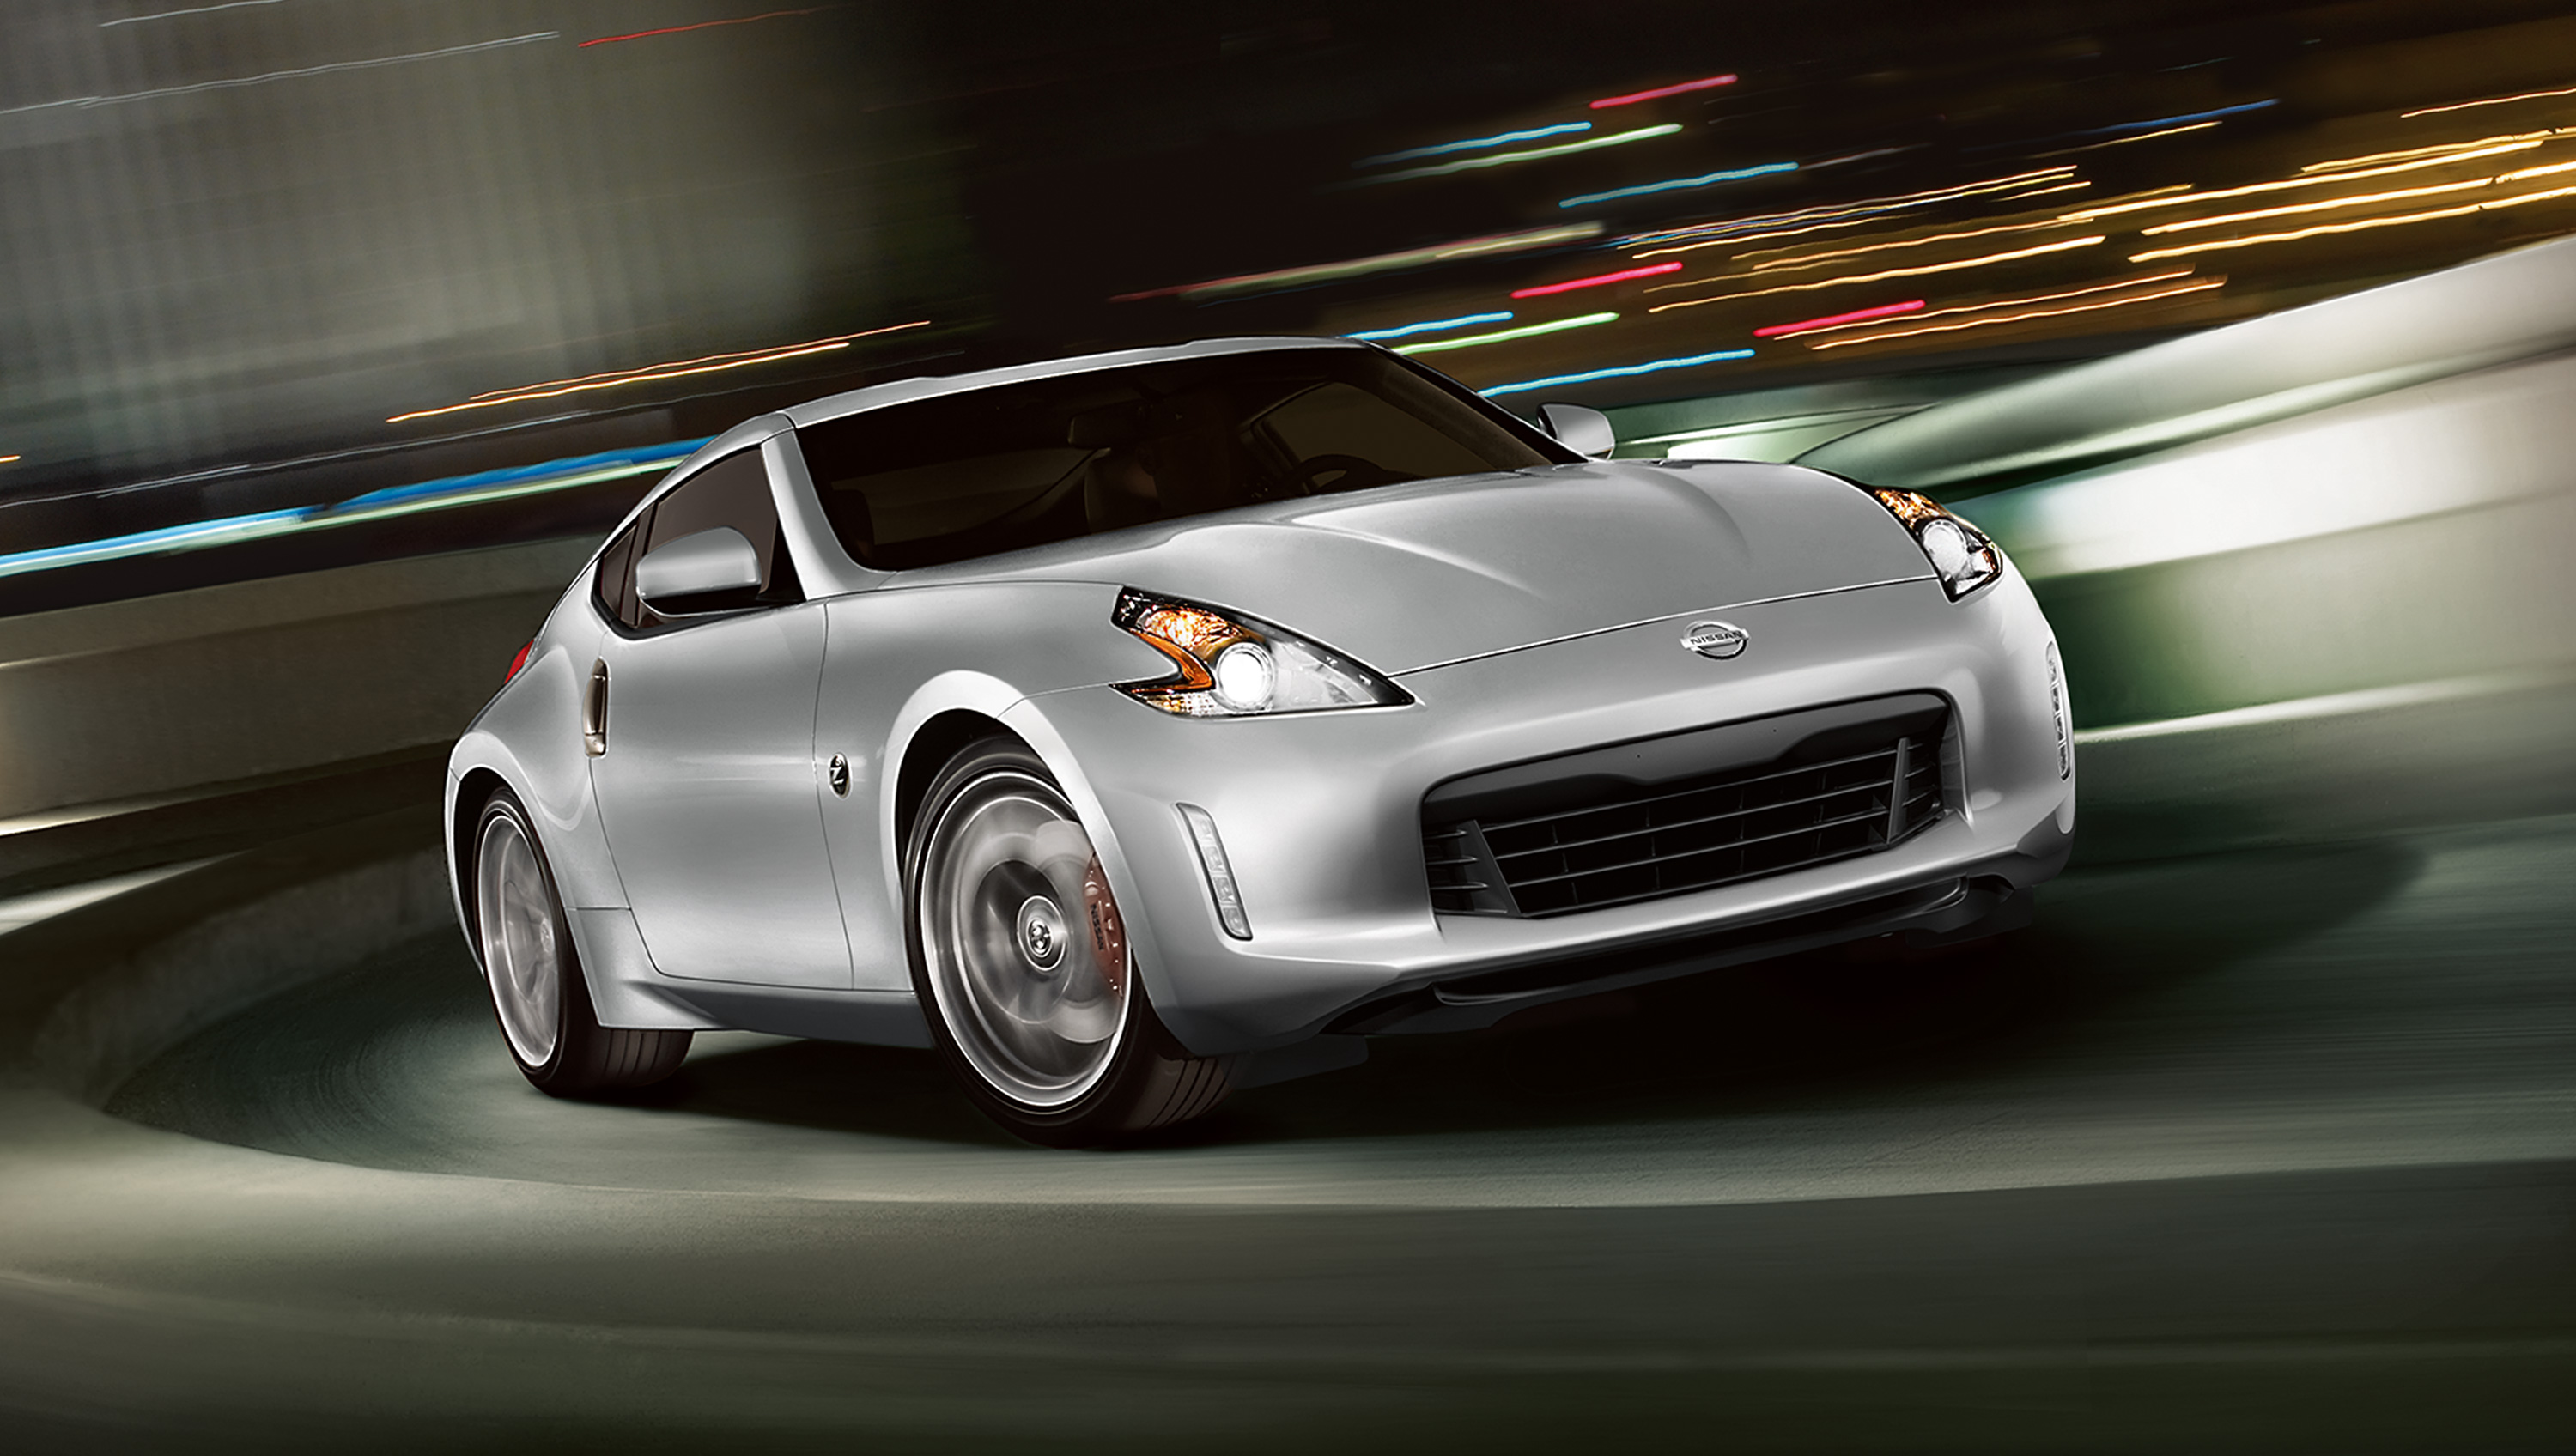 New Nissan 370Z For Sale Lynnfield MA